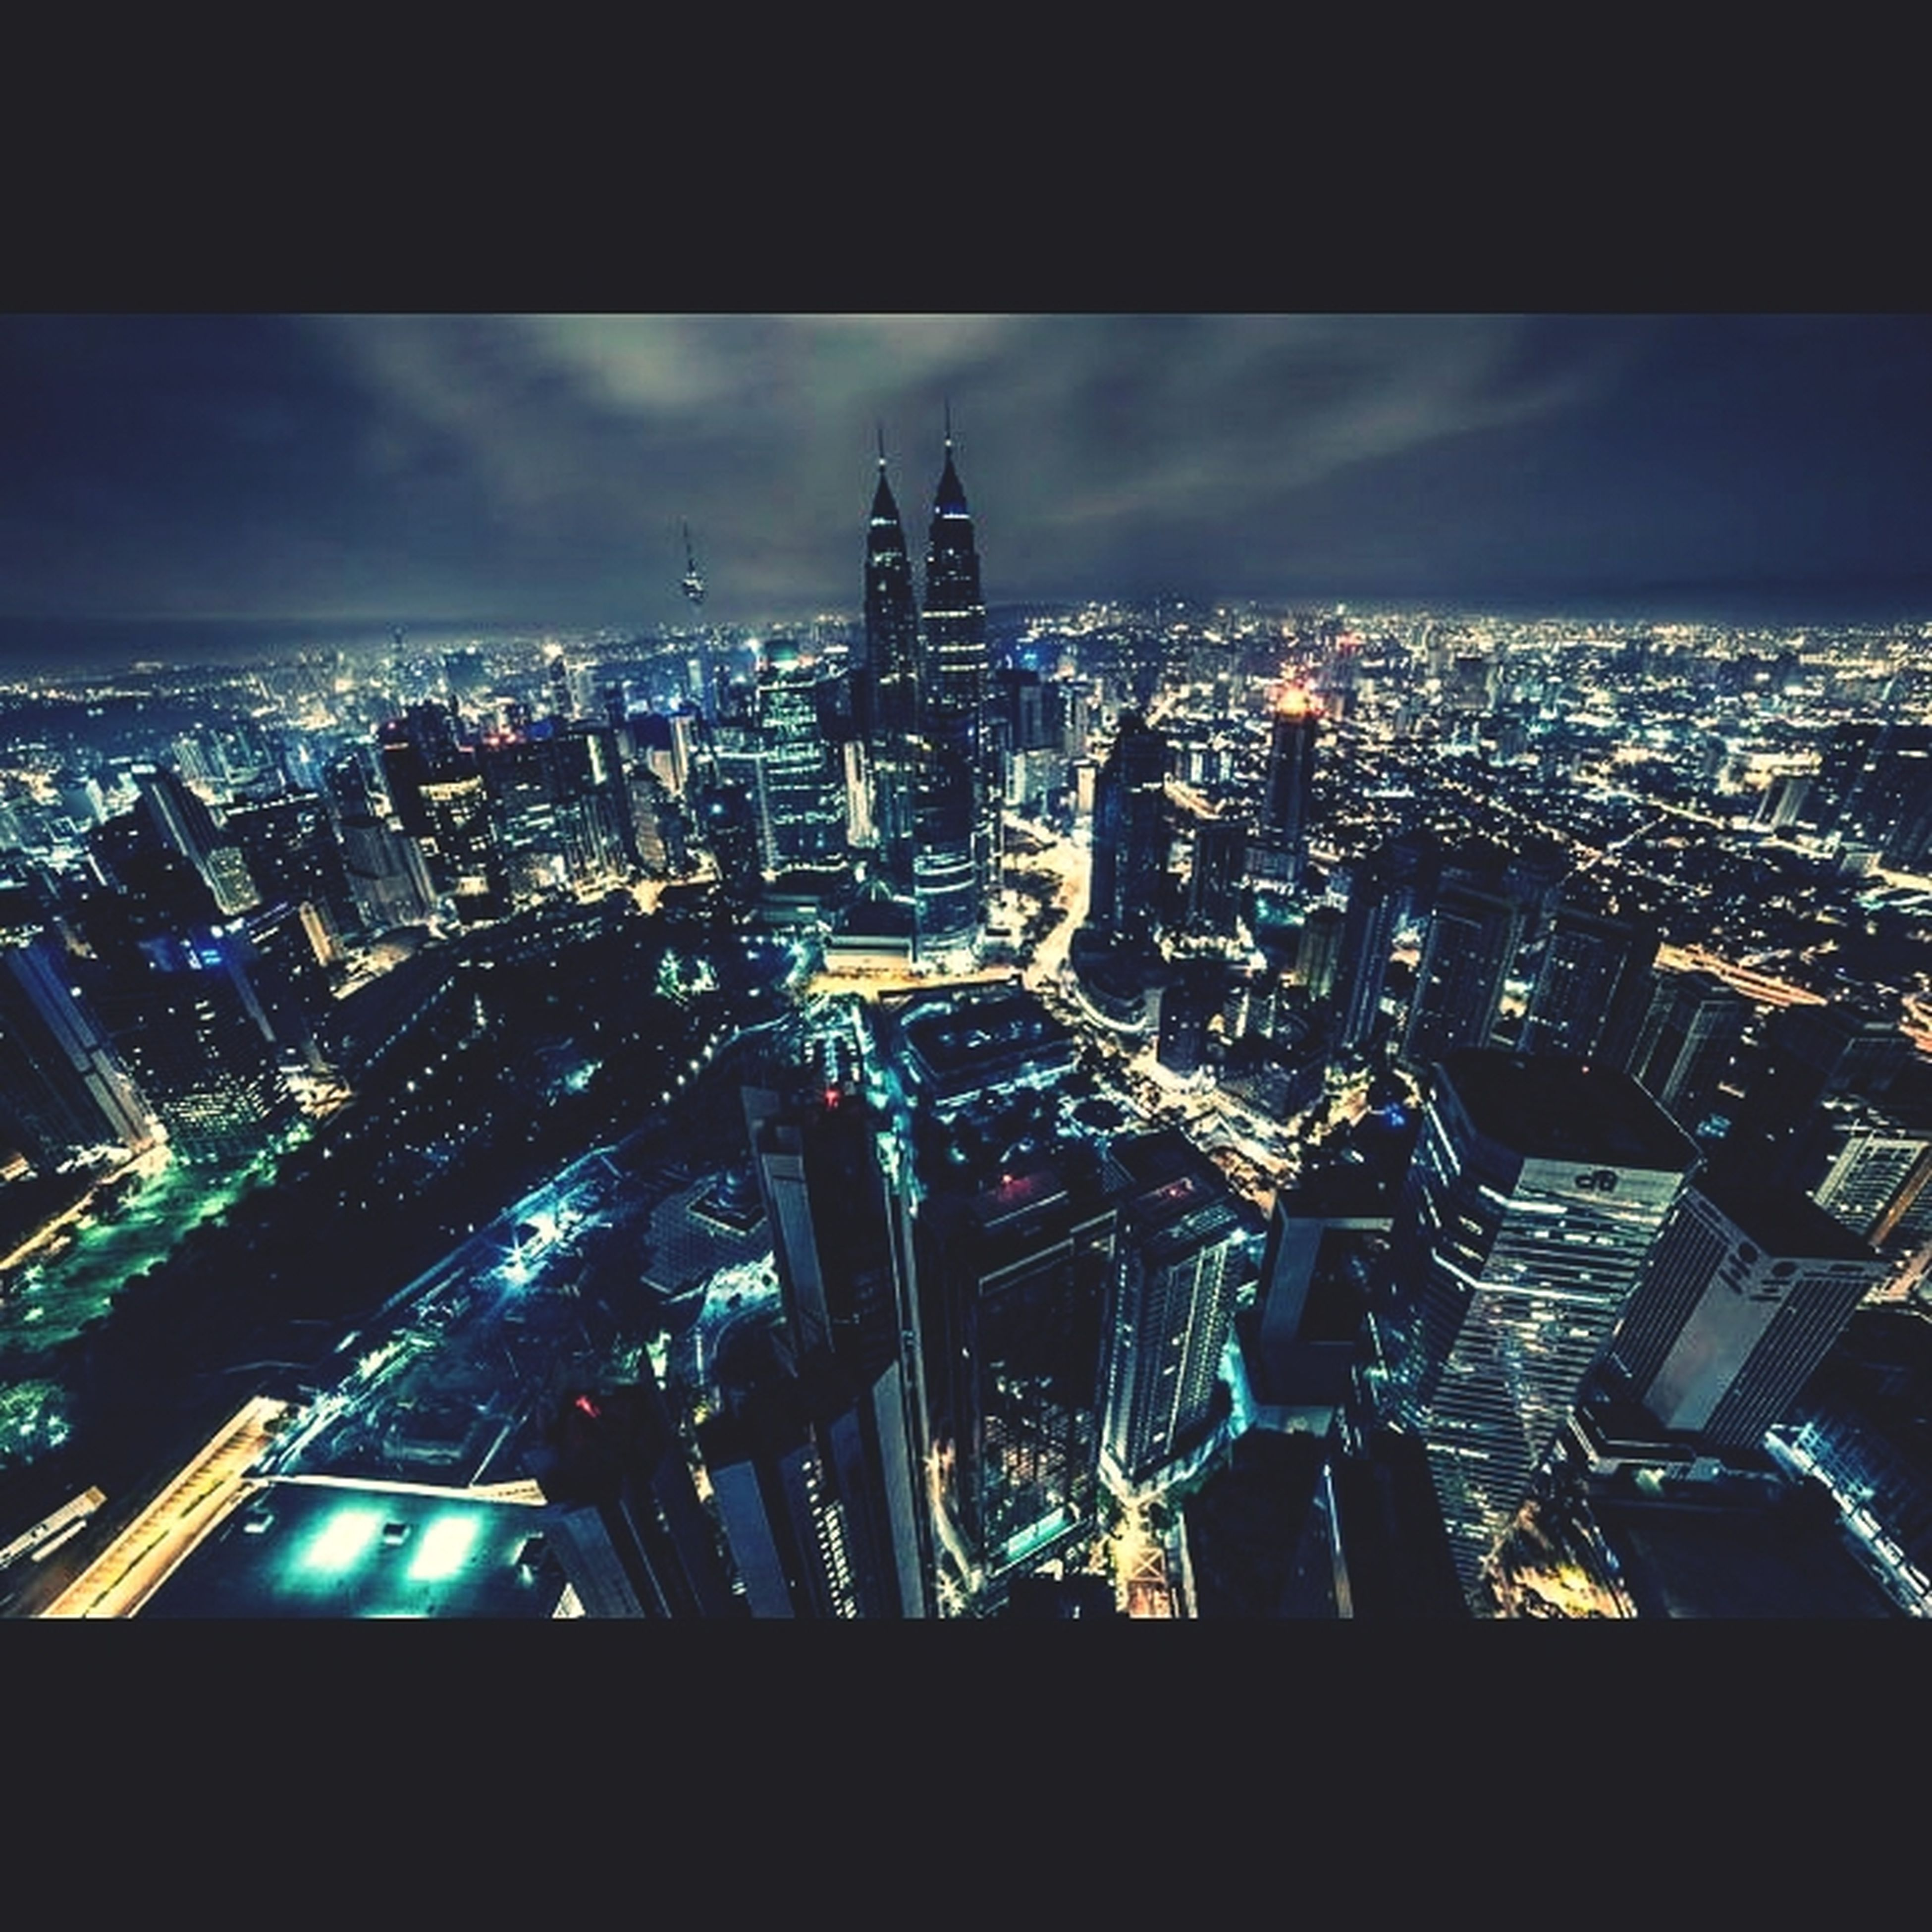 cityscape, city, architecture, building exterior, built structure, illuminated, skyscraper, crowded, night, sky, tall - high, tower, high angle view, modern, city life, residential district, capital cities, transfer print, office building, travel destinations